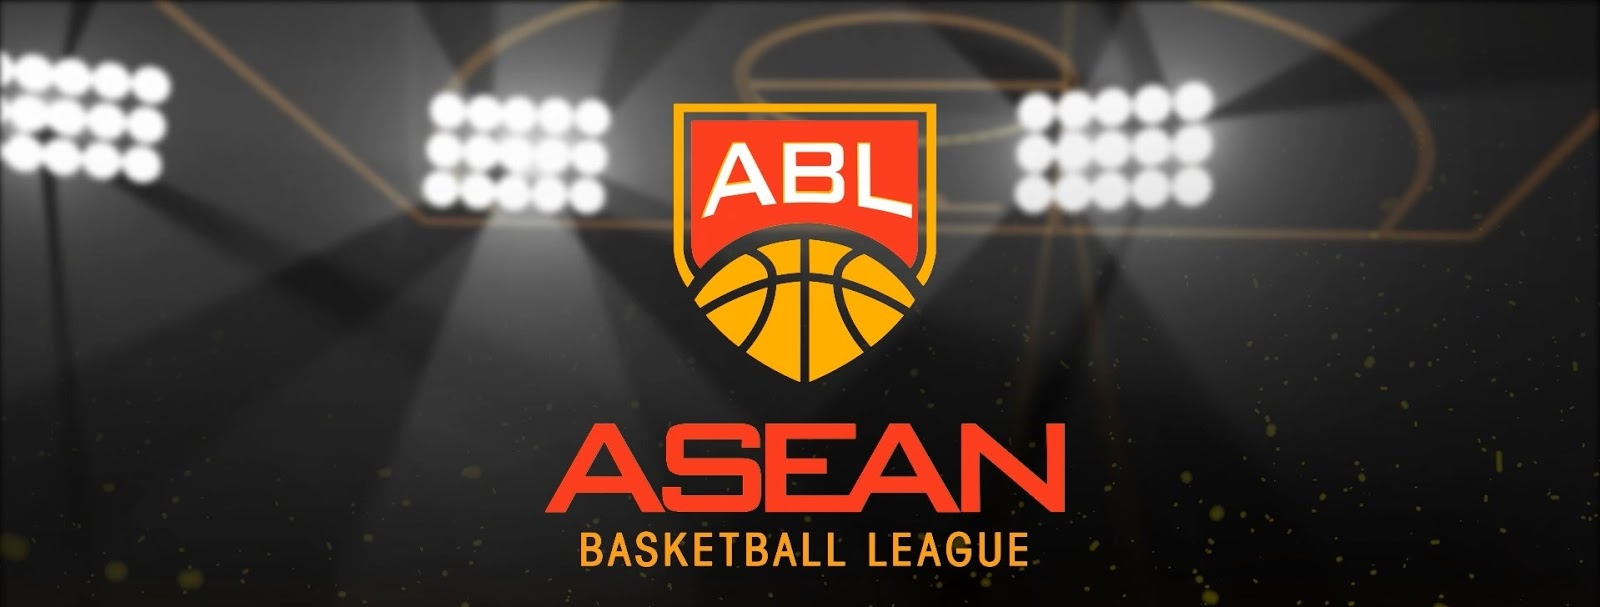 f1fa8c5f5a8 Tanduay-Alab Pilipinas vs Singapore Slingers on tap for ABL play